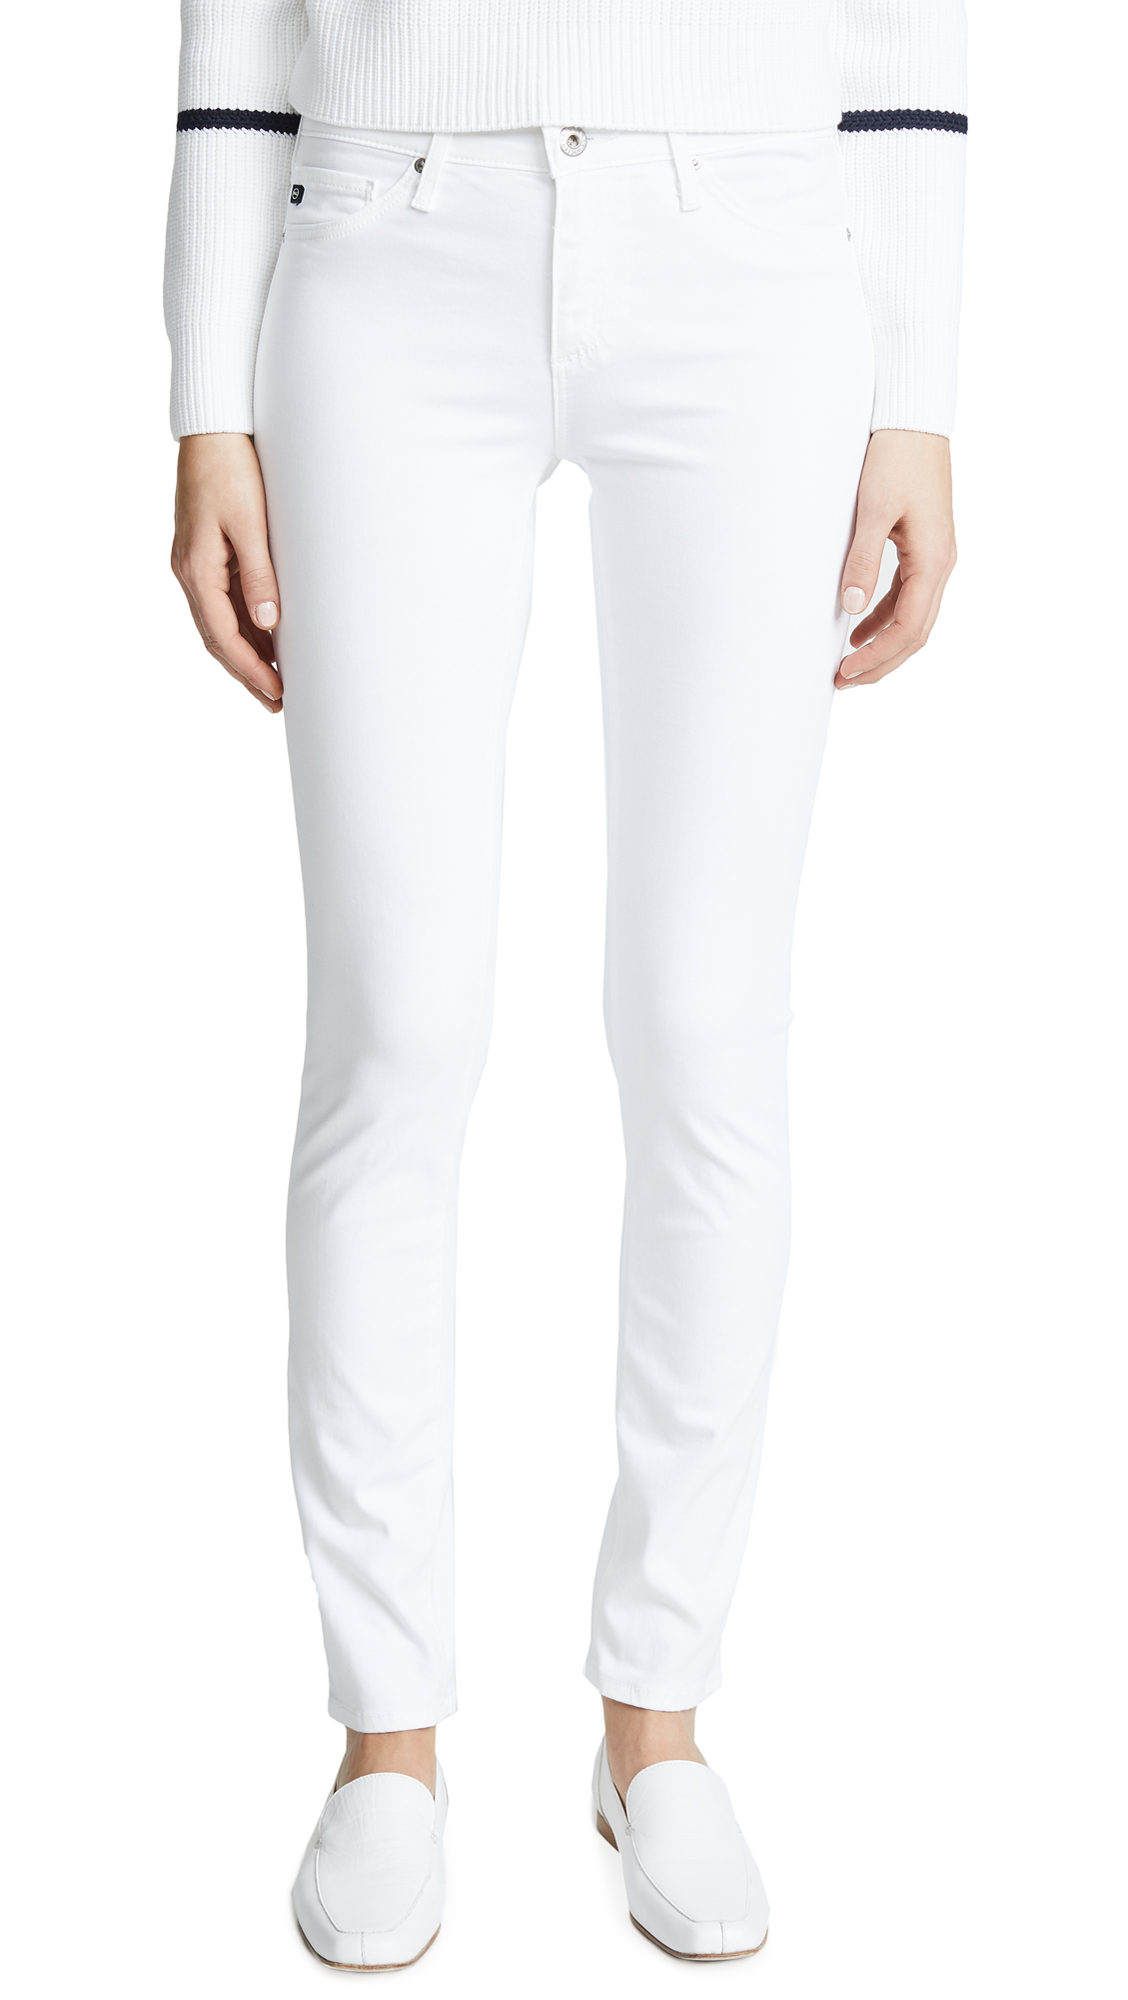 THE PRIMA SATEEN JEANS